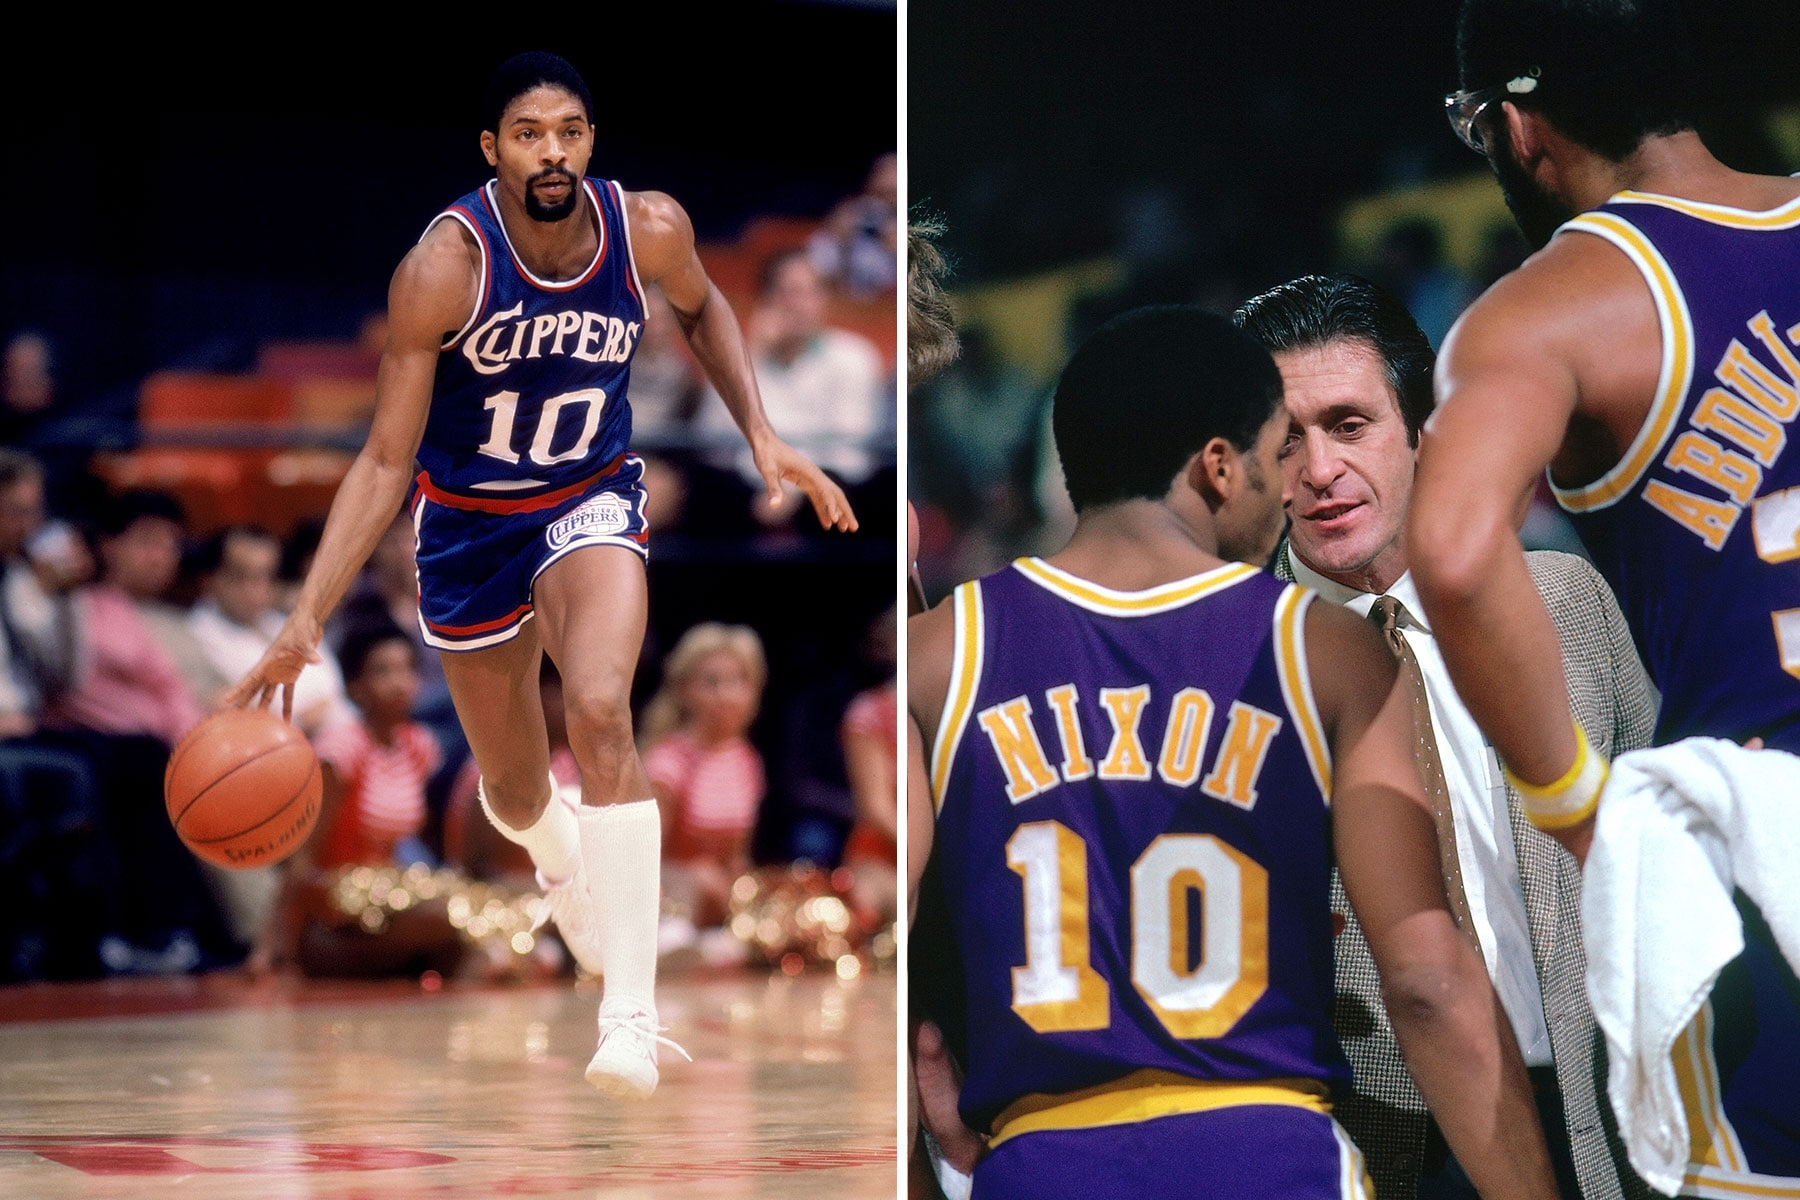 Top 10 Players Who Played For Clippers & Lakers